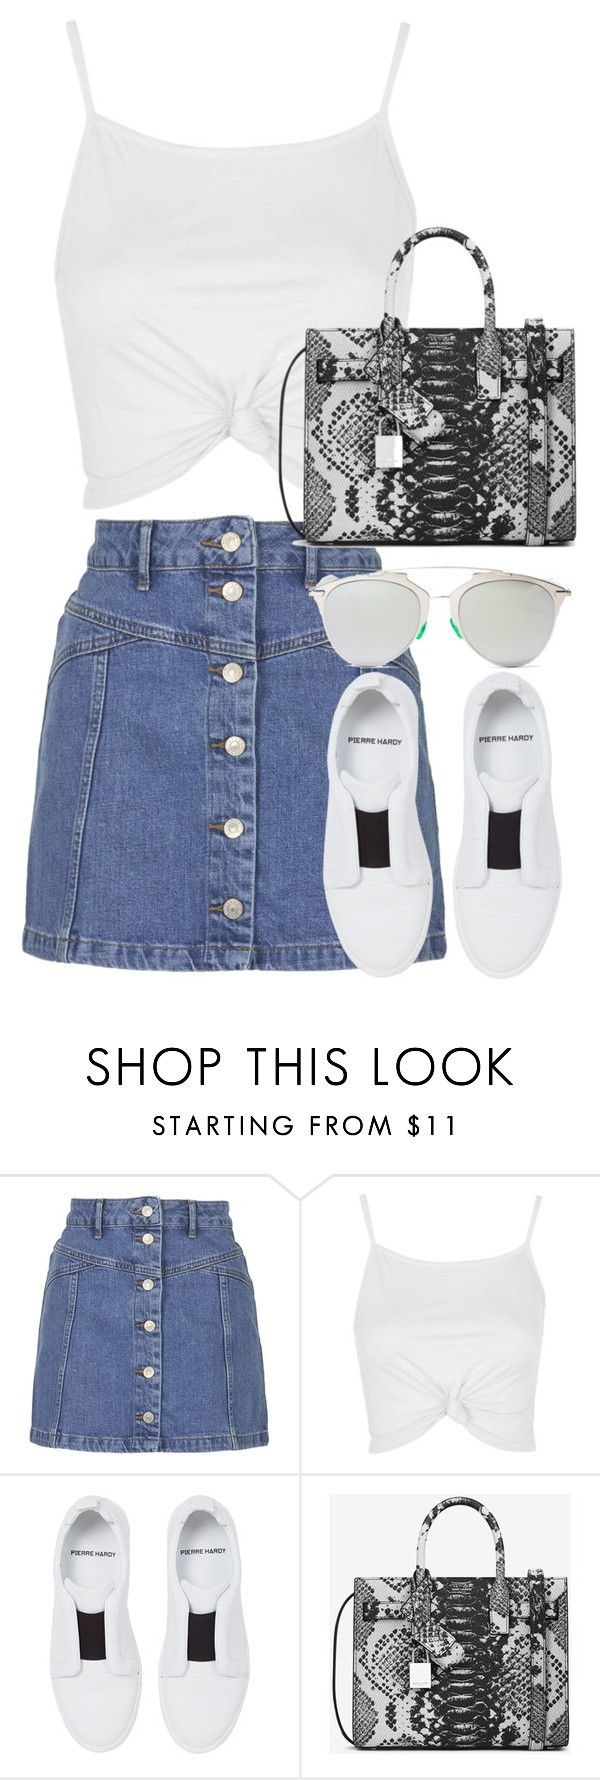 """Untitled #2670"" by elenaday ❤ liked on Polyvore featuring Topshop, Pierre Hardy, Yves Saint Laurent and Christian Dior"